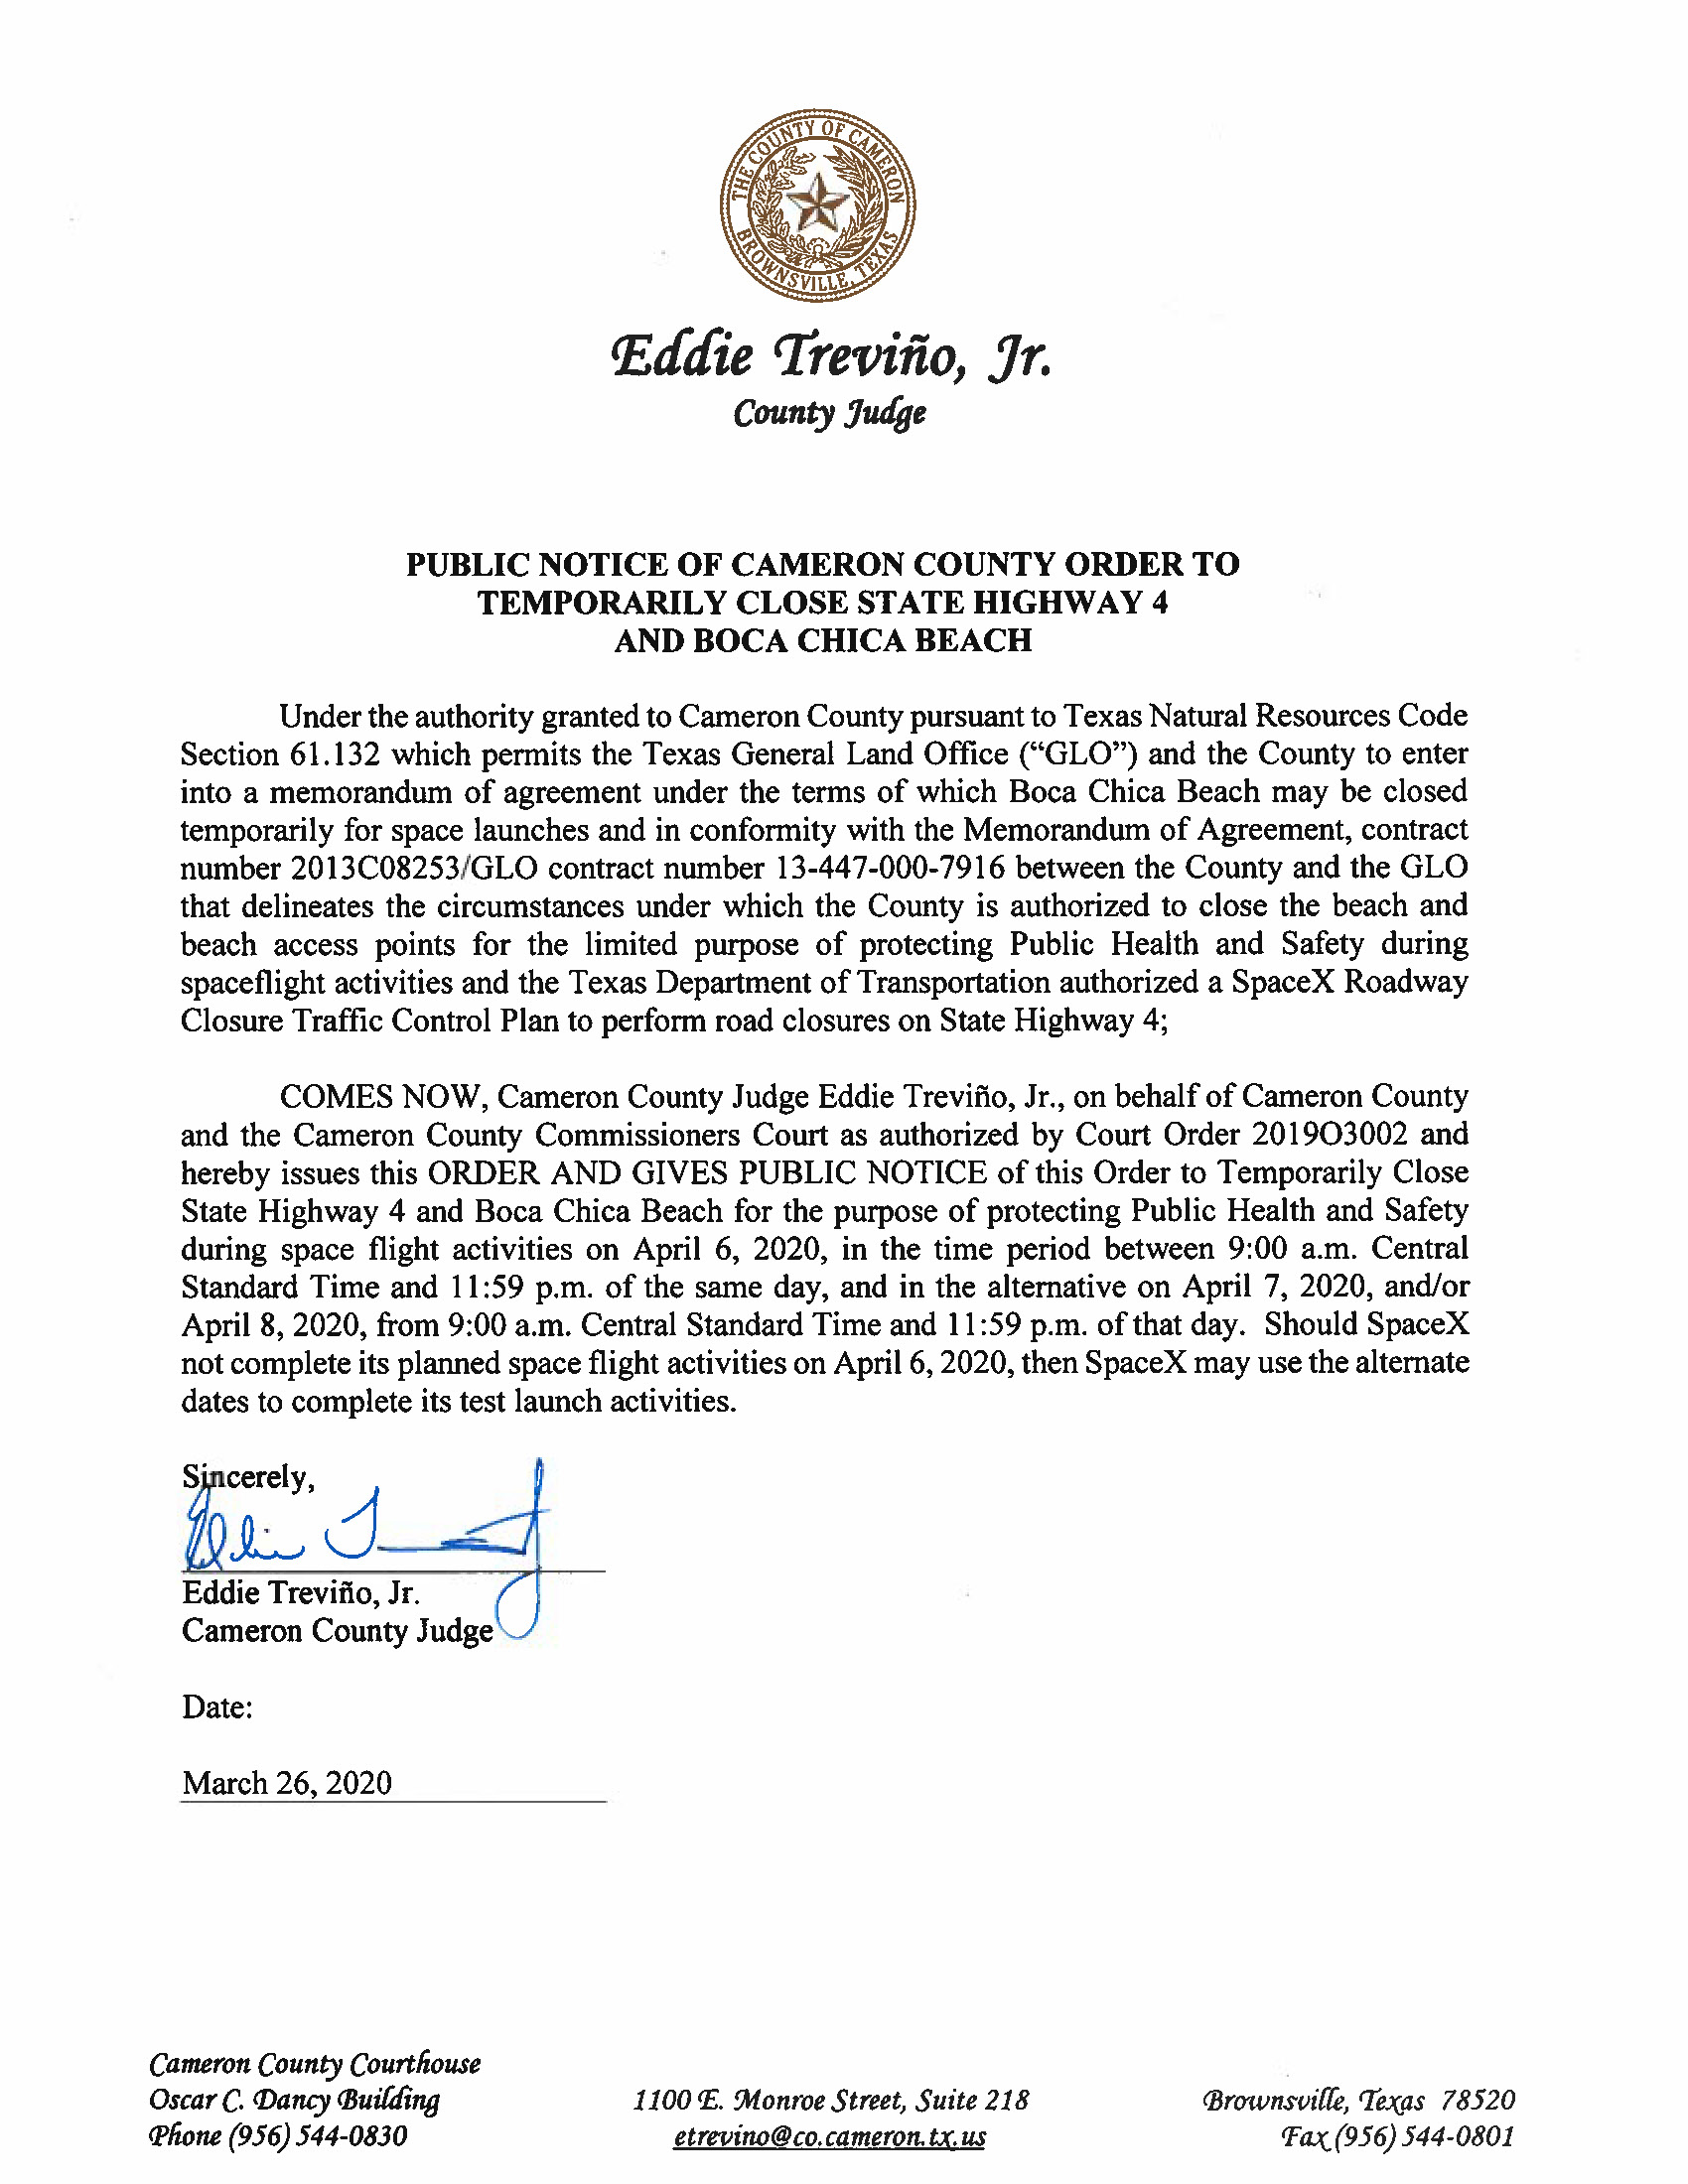 Order And Exhibit B For Boca Chica Beach And Road Closure.04.06.20 Page 1